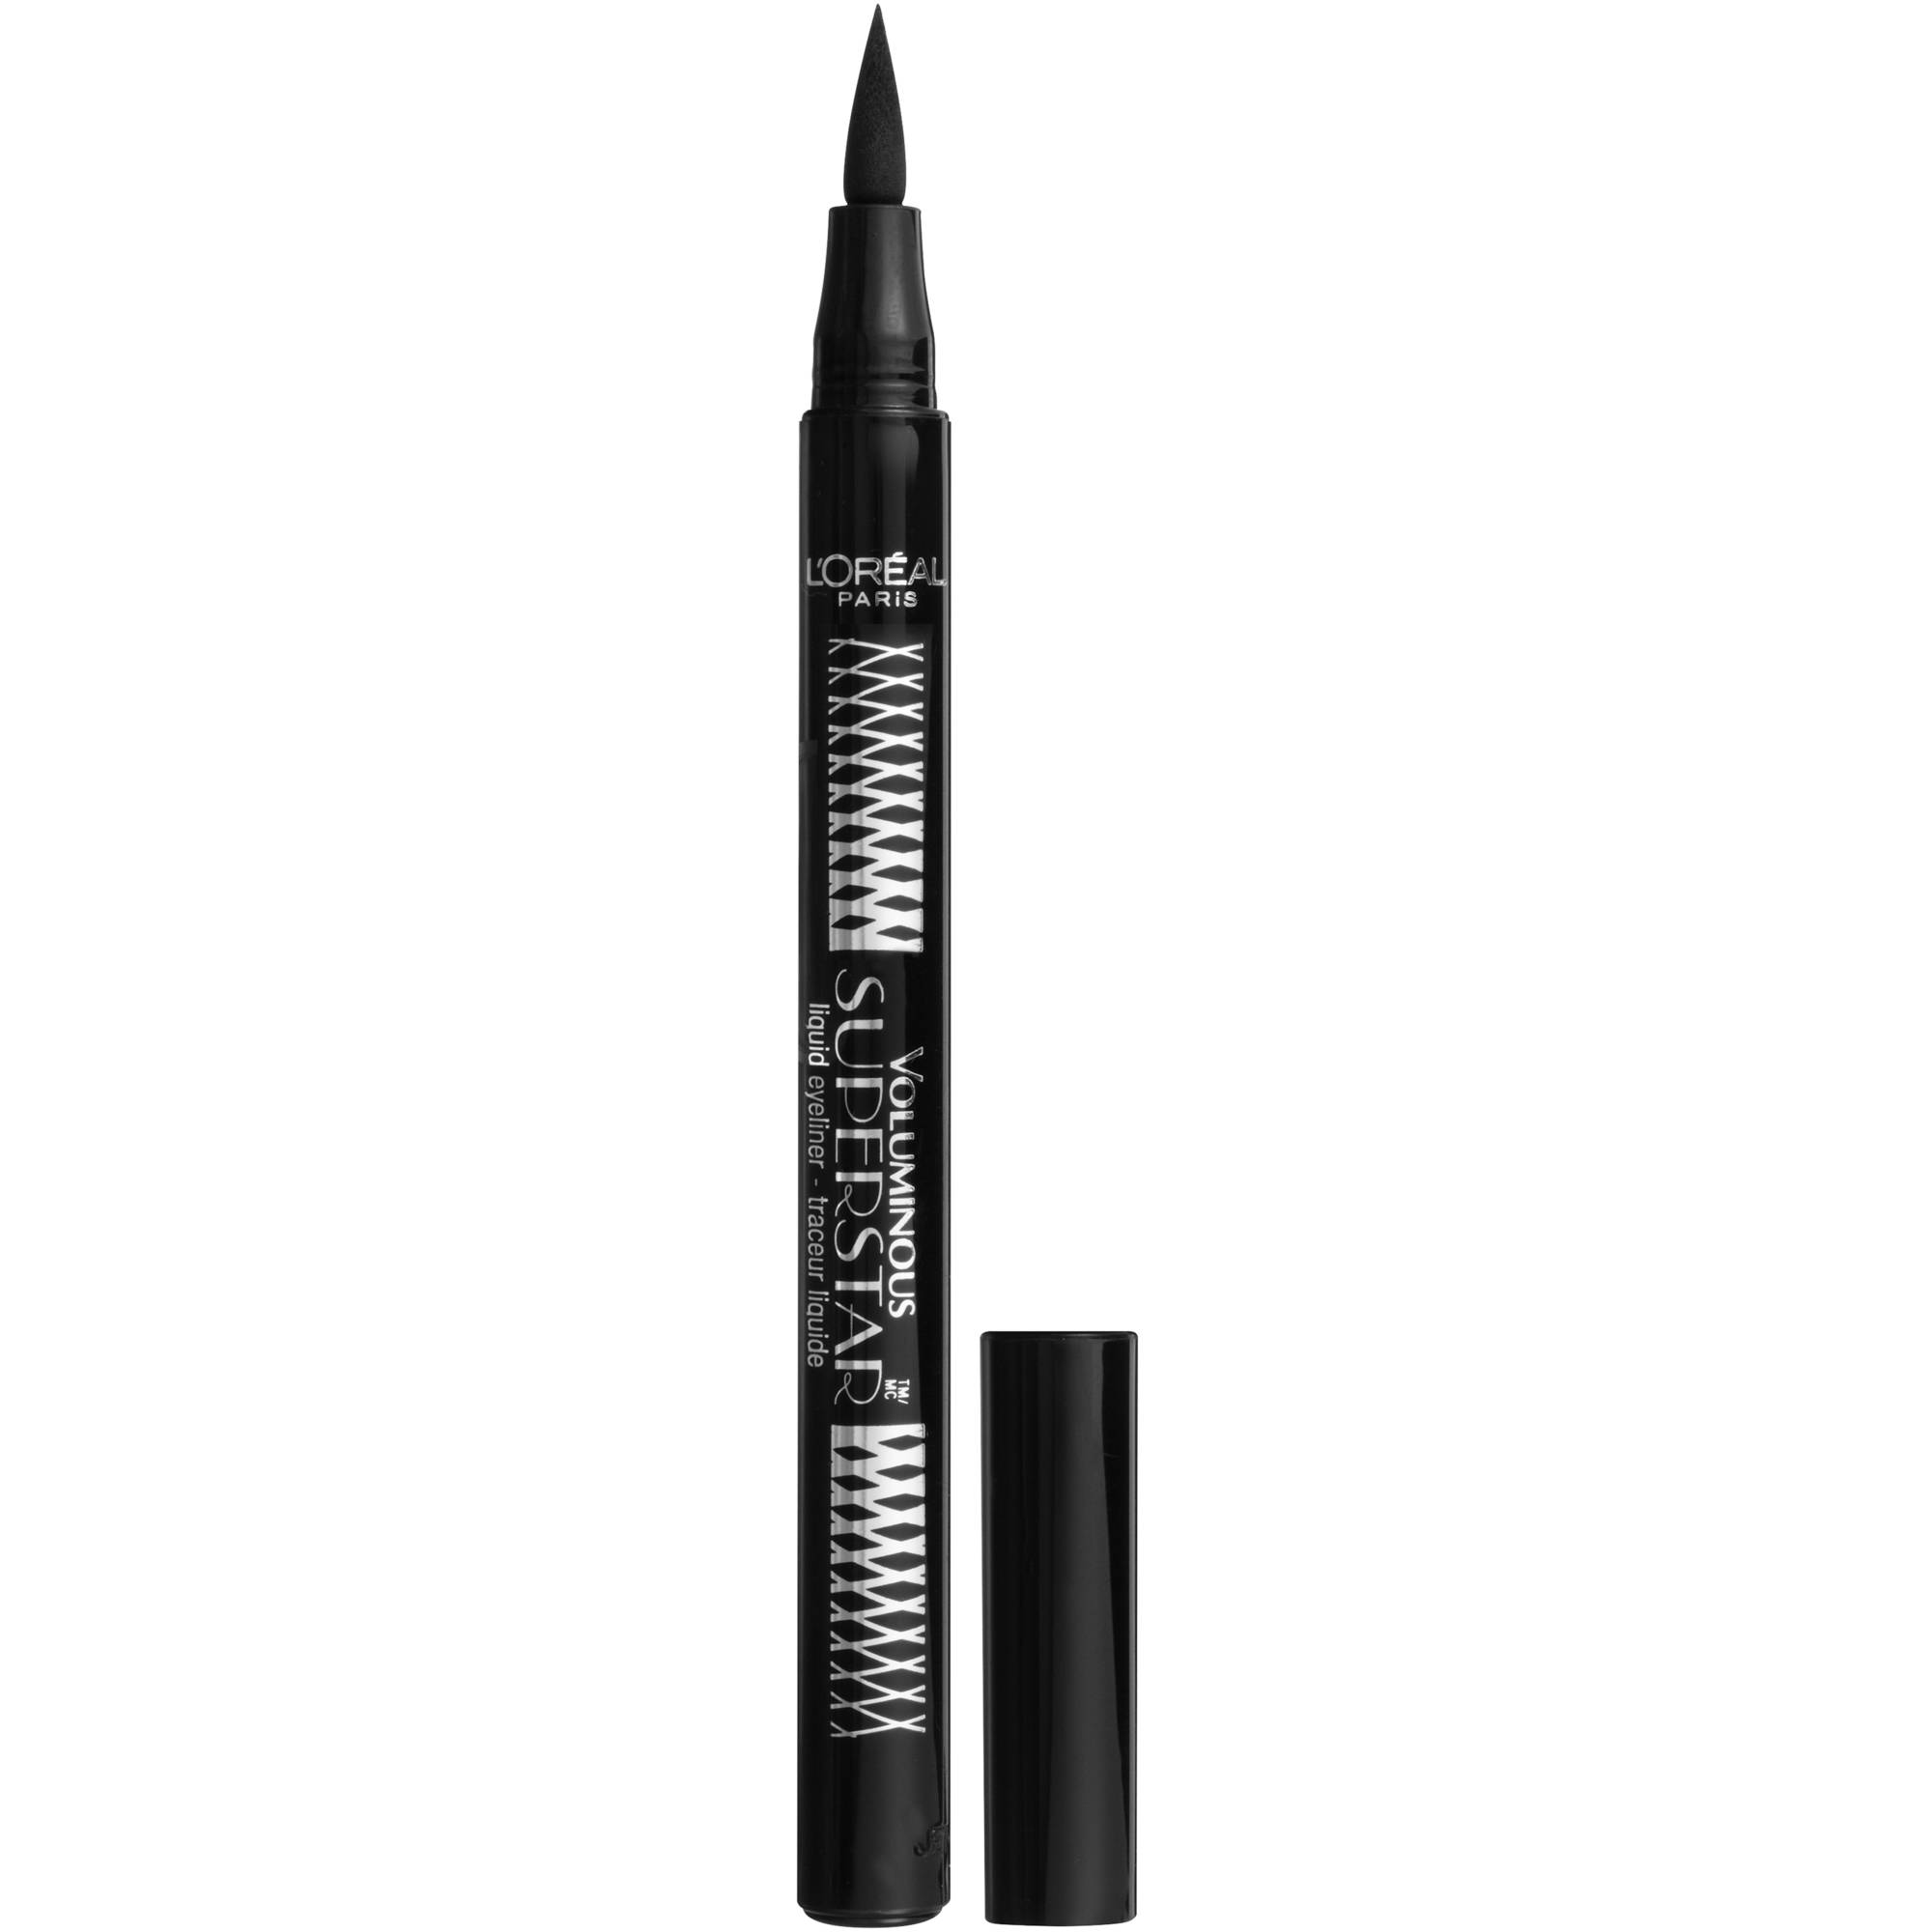 L'Oréal Paris Voluminous Liner Noir Liquid Eyeliner Pen. $9.99